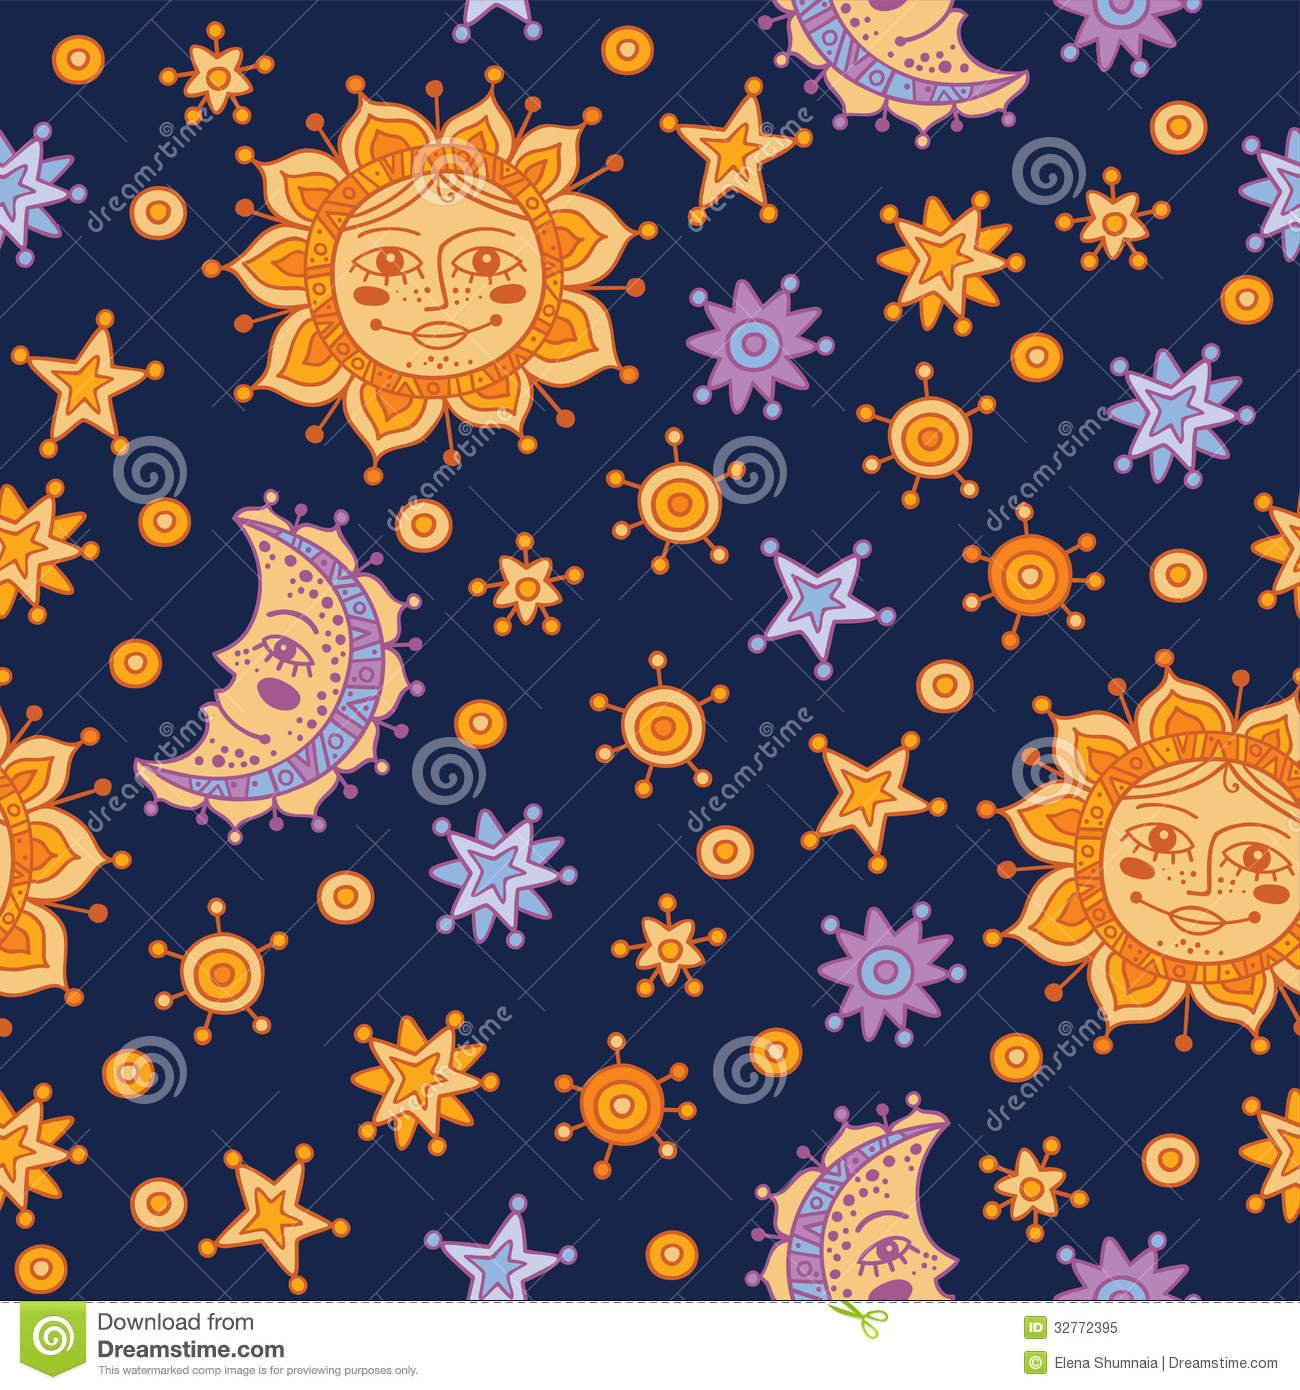 worksheet Sun And Stars sun moon stars wallpaper wallpapersafari and backgrounds seamless